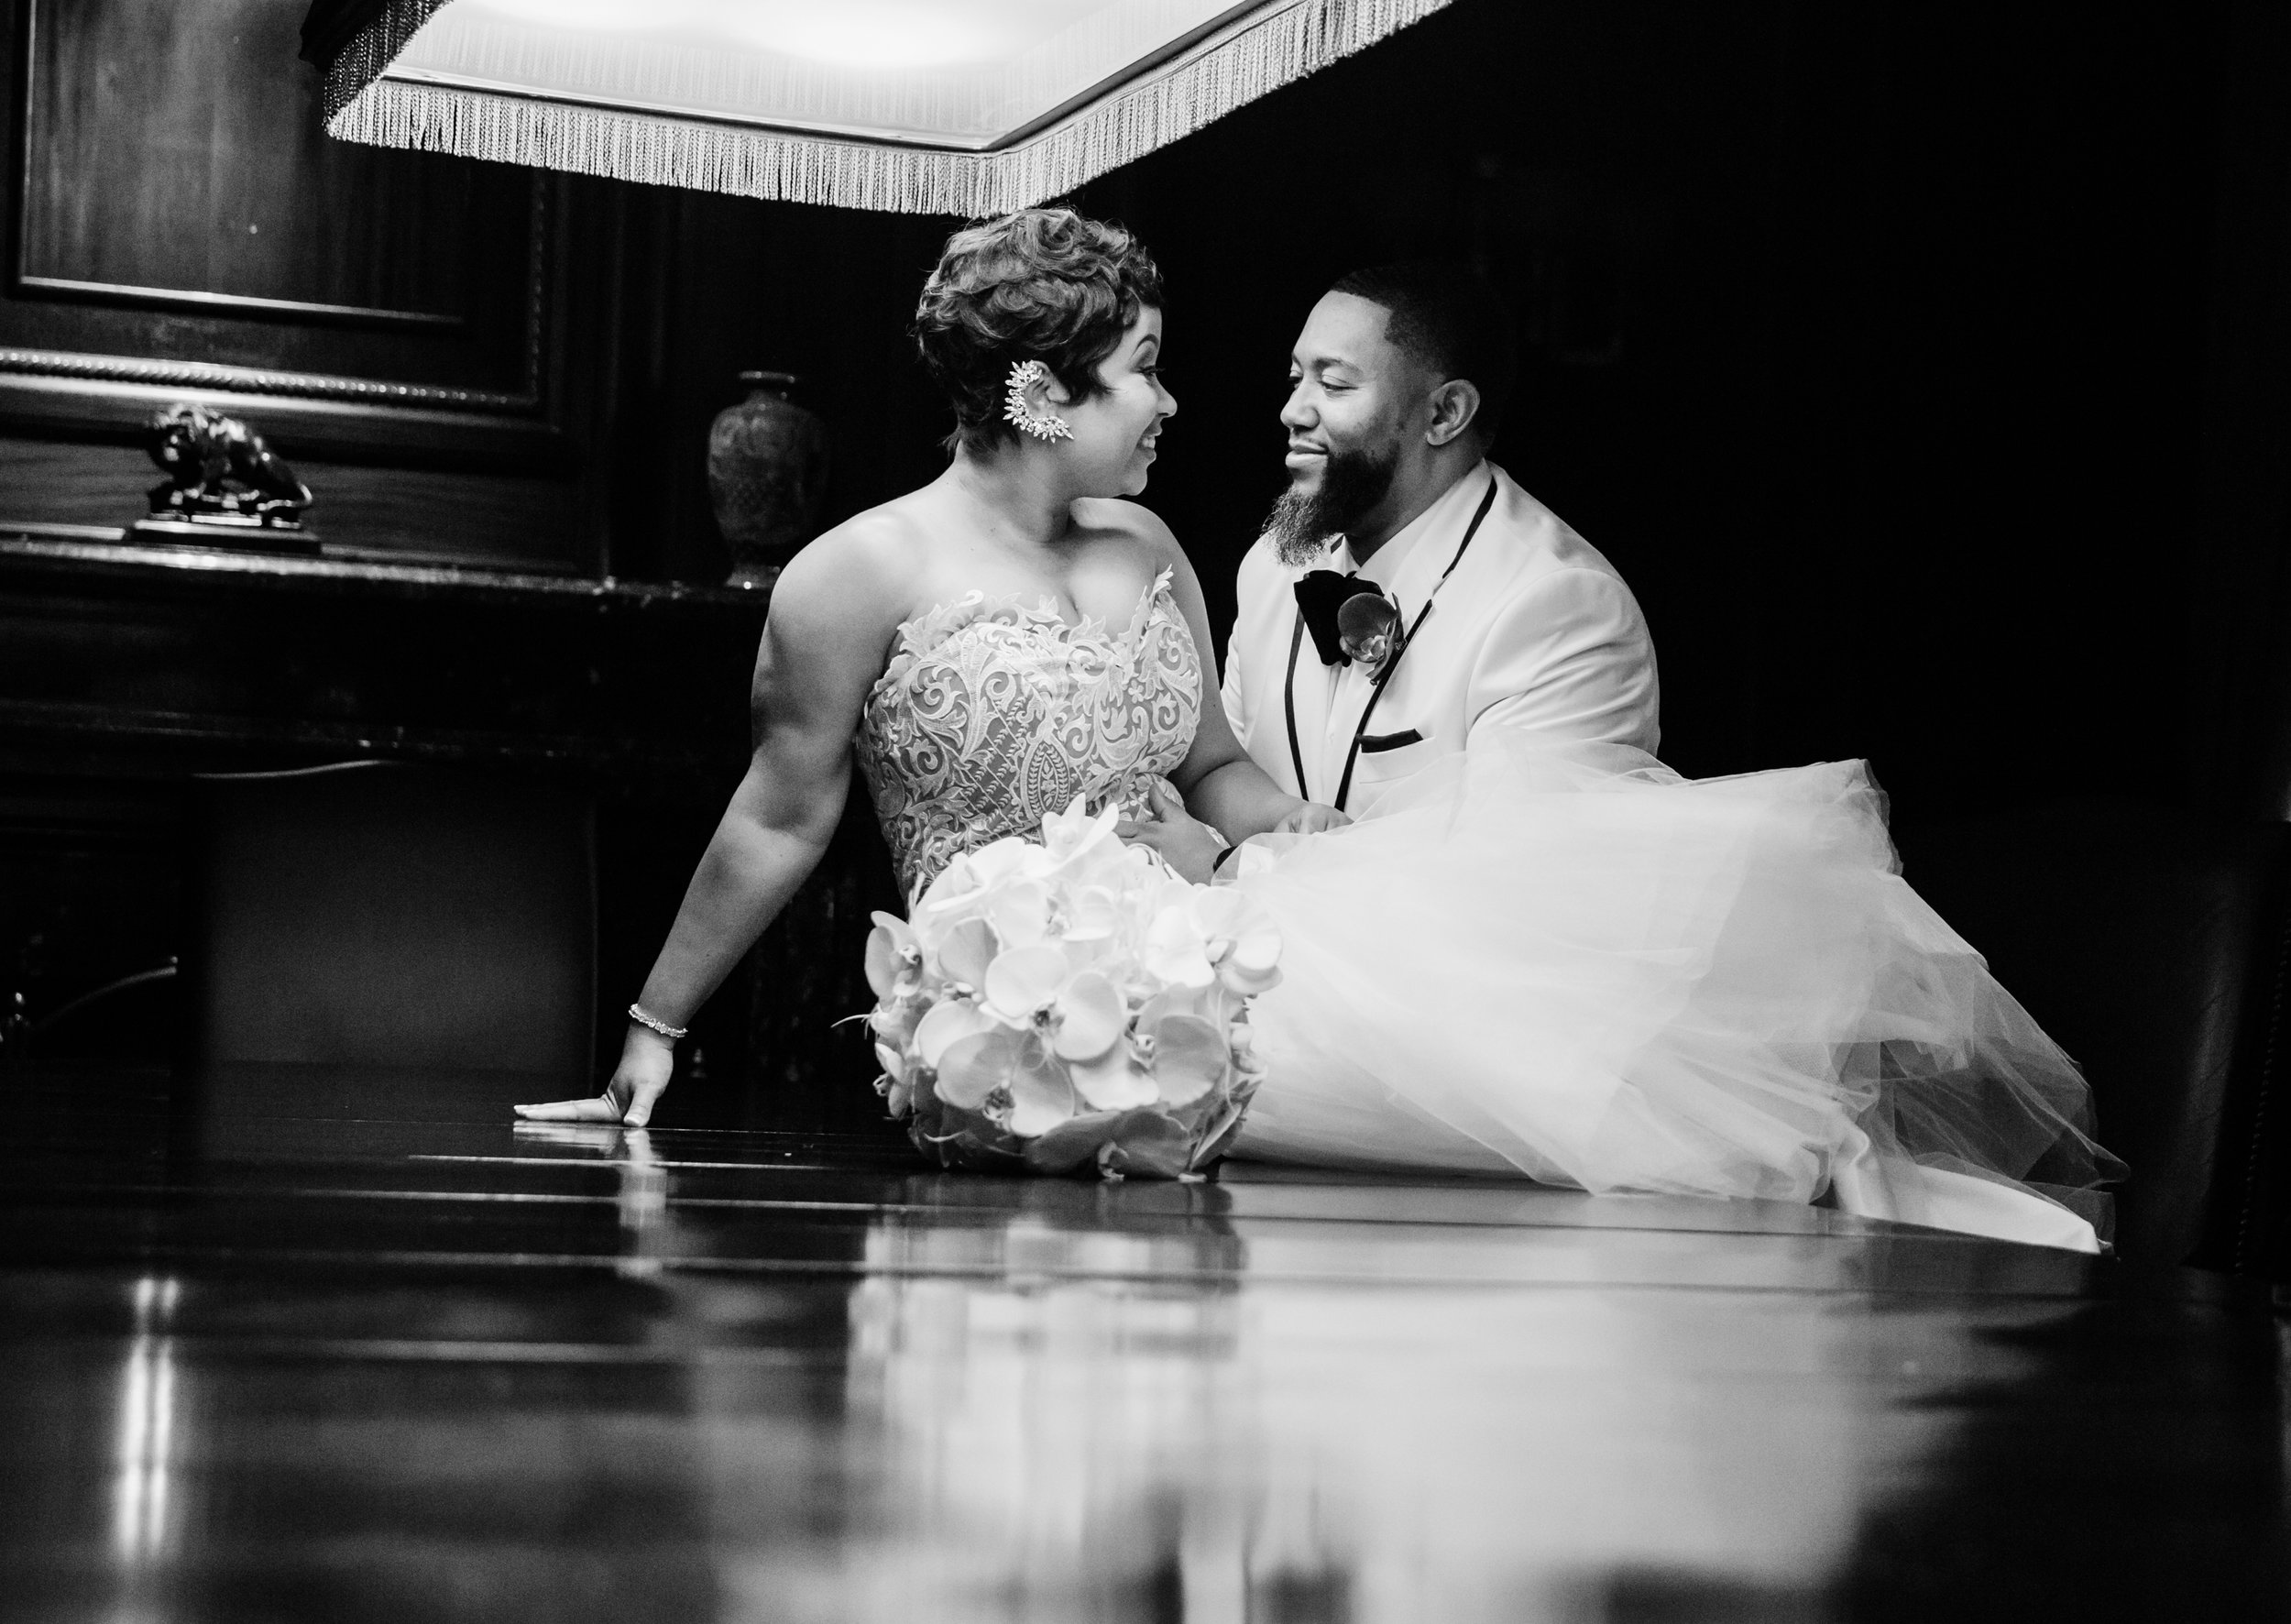 Best Classic Black Bride at The Grand Baltimore Maryland Husband and Wife Wedding Photographers Megapixels Media (58 of 98).jpg